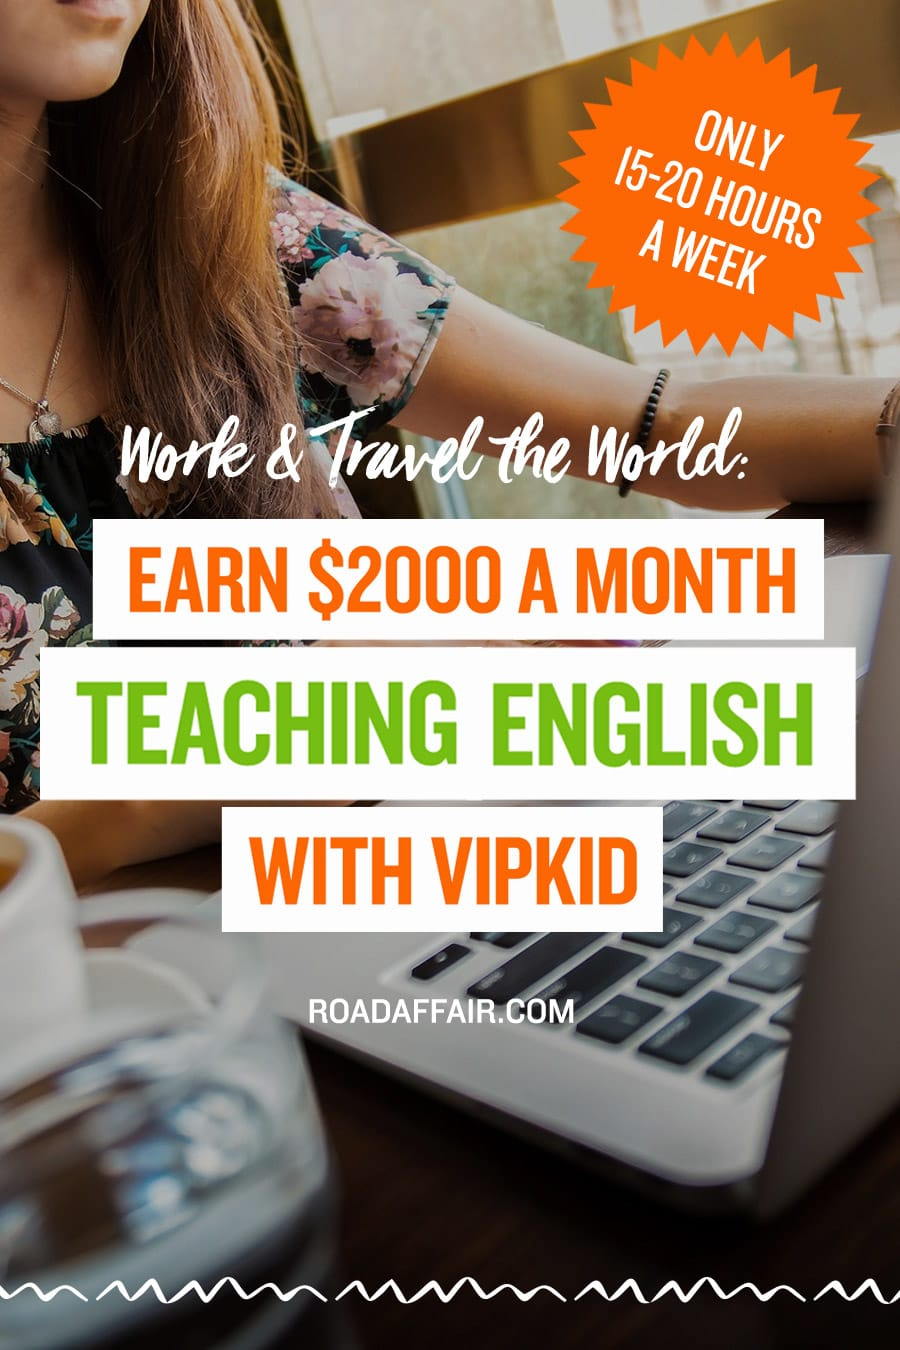 The Ultimate Guide to Teaching English with VIPKID | Road Affair